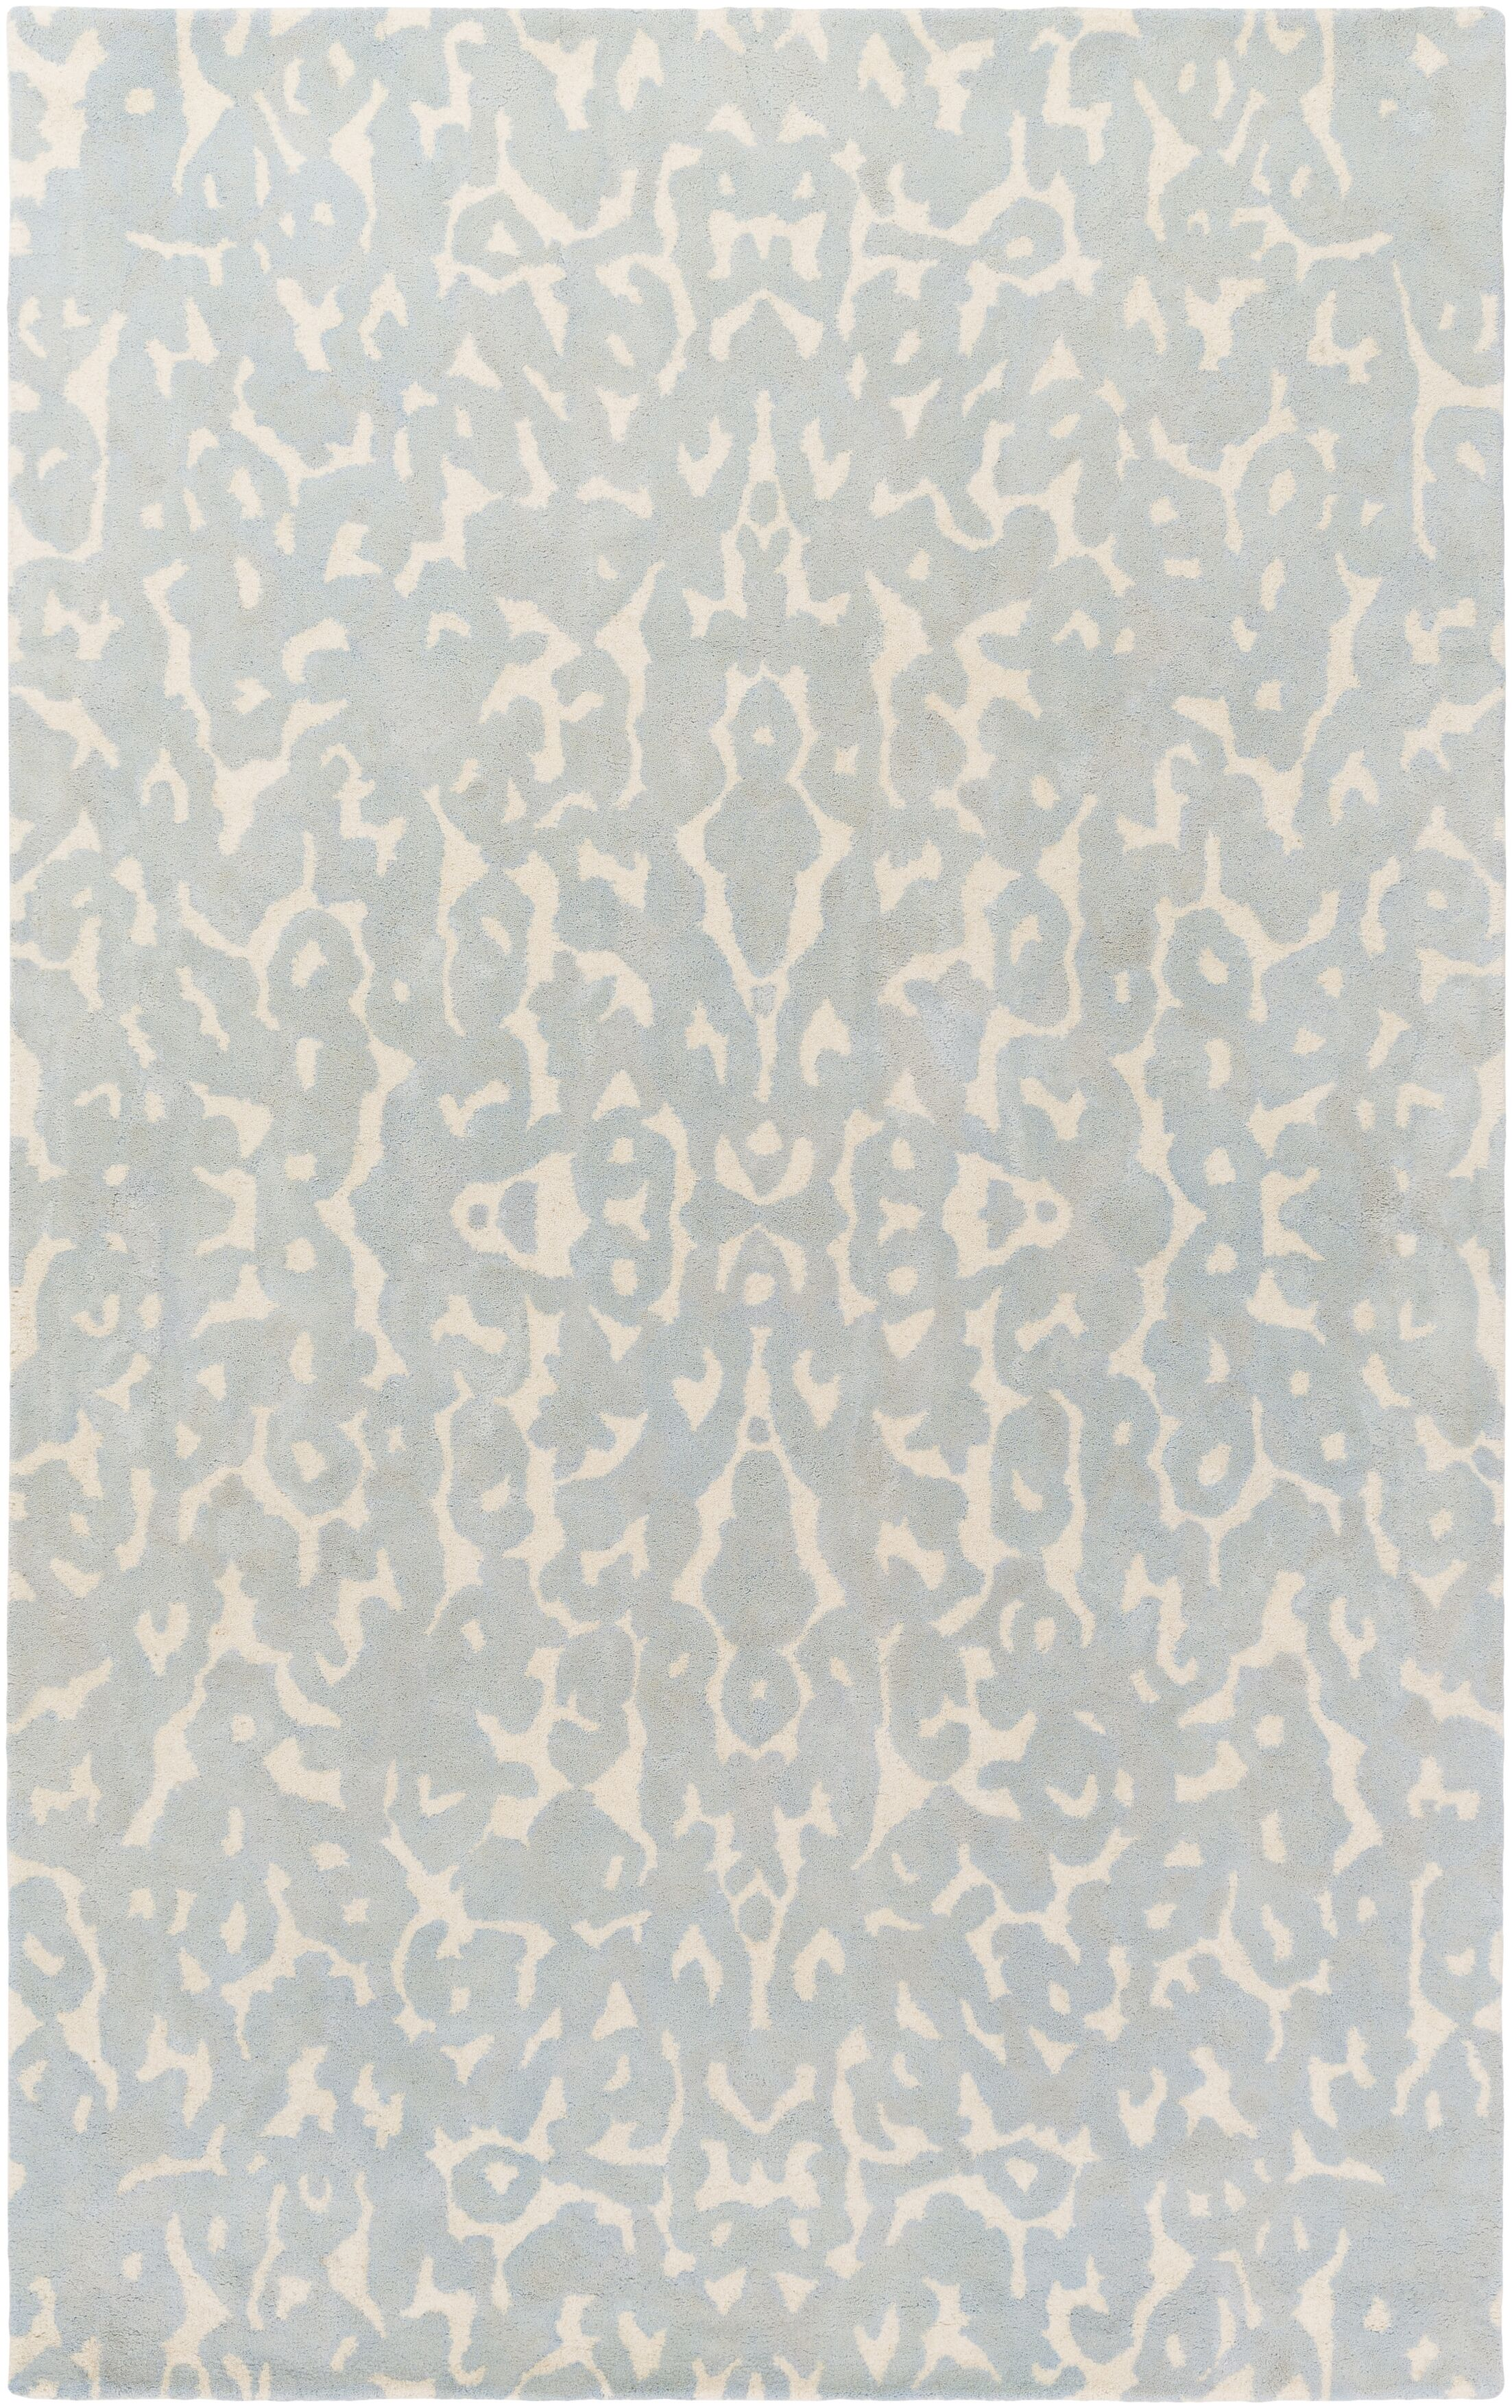 Ginter Hand-Tufted Light Gray Area Rug Rug Size: Rectangle 8' x 10'